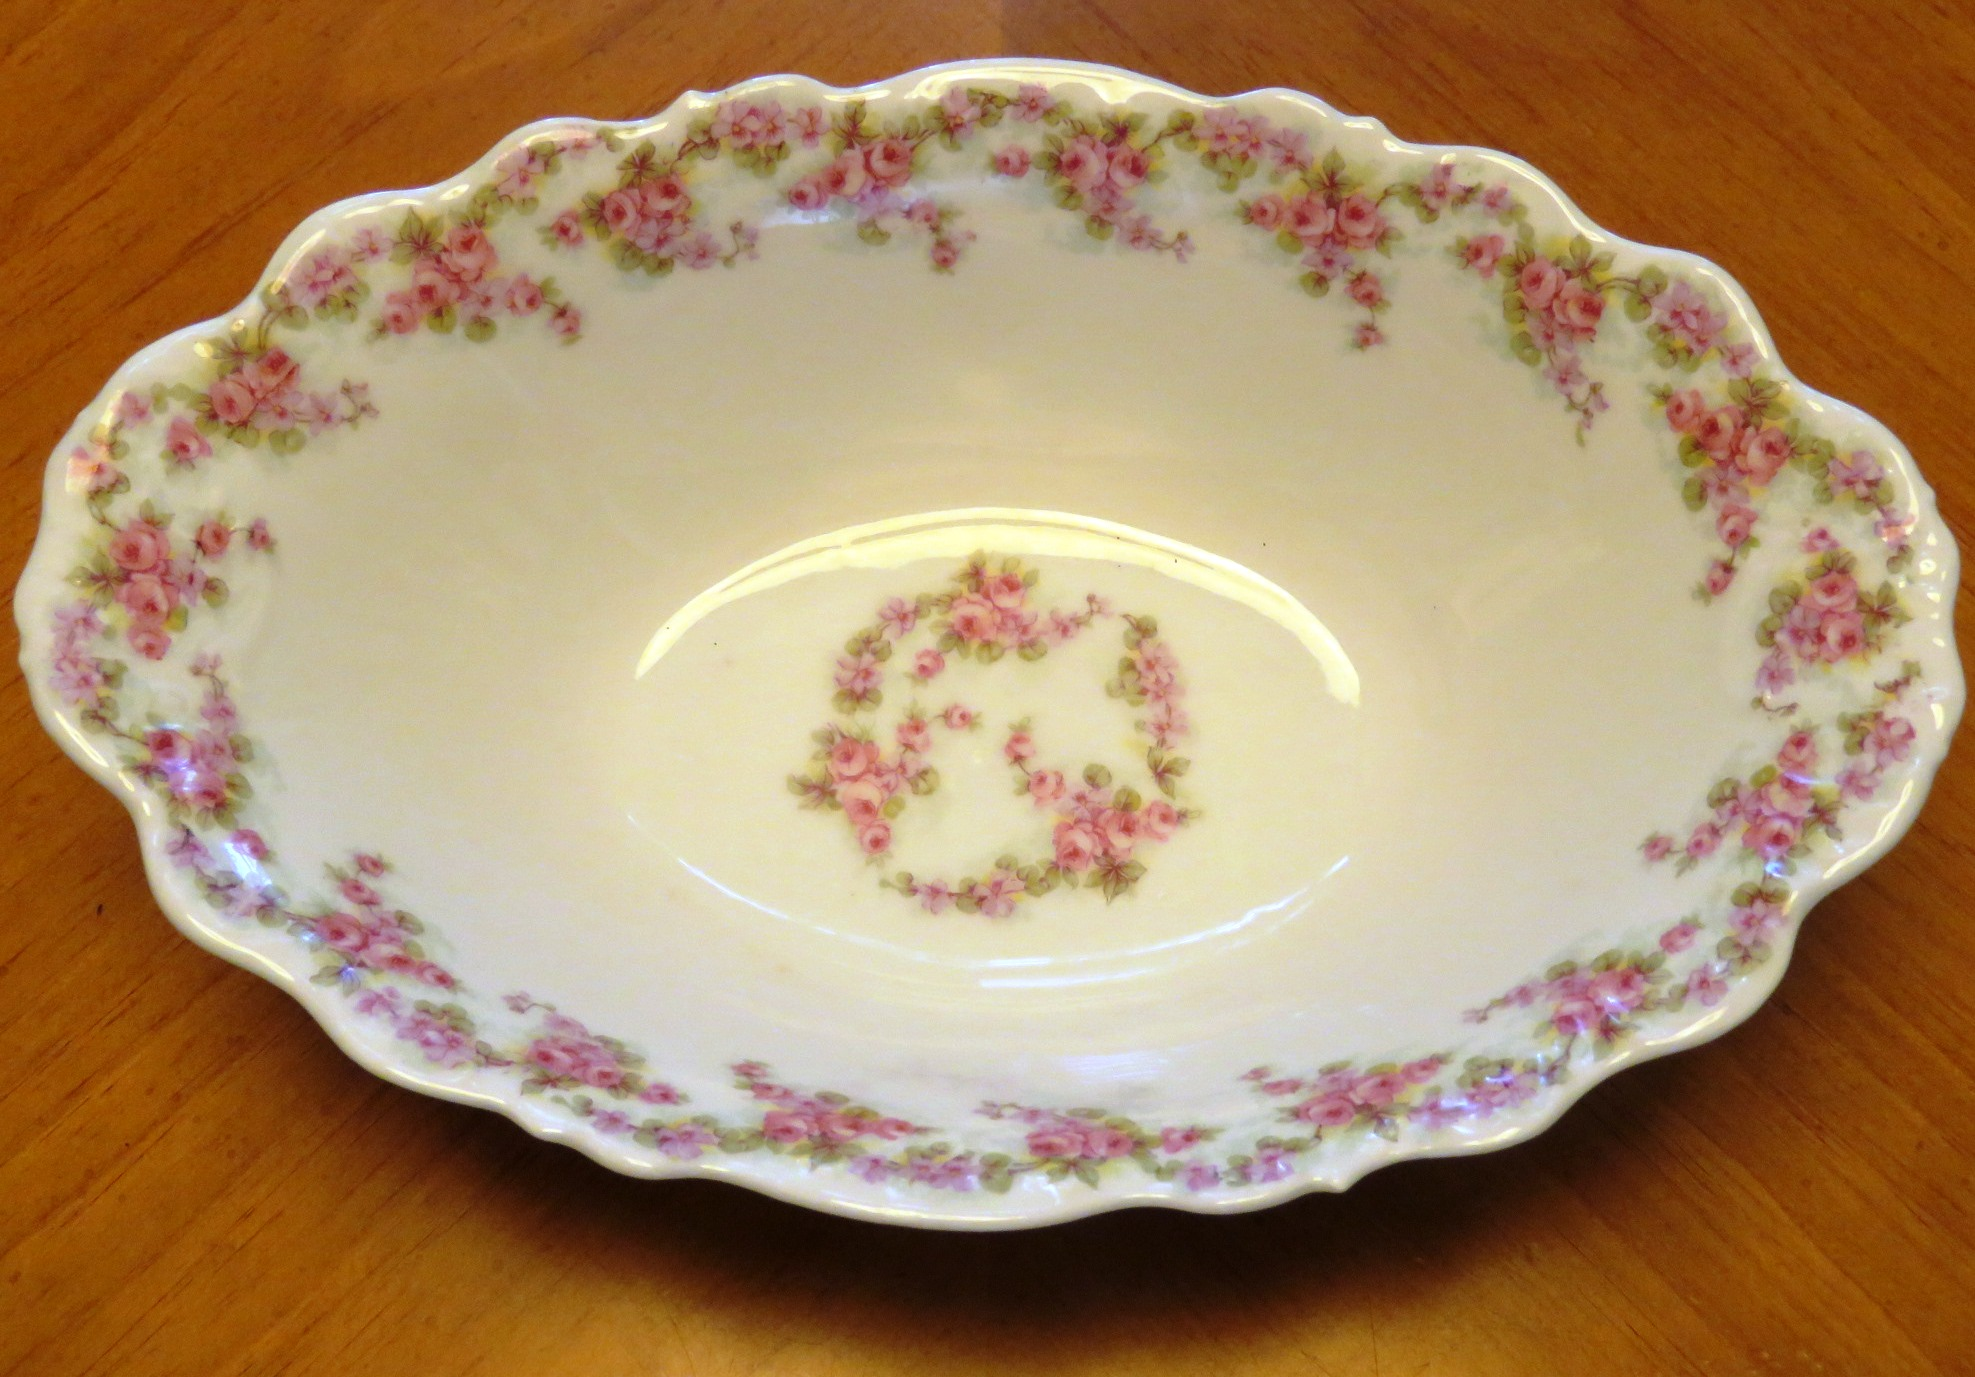 Antique Limoges Bridal Wreath Oval Dish Vegetable Serving Bowl Elite Works Roses (POT-194) in Pottery & Glass